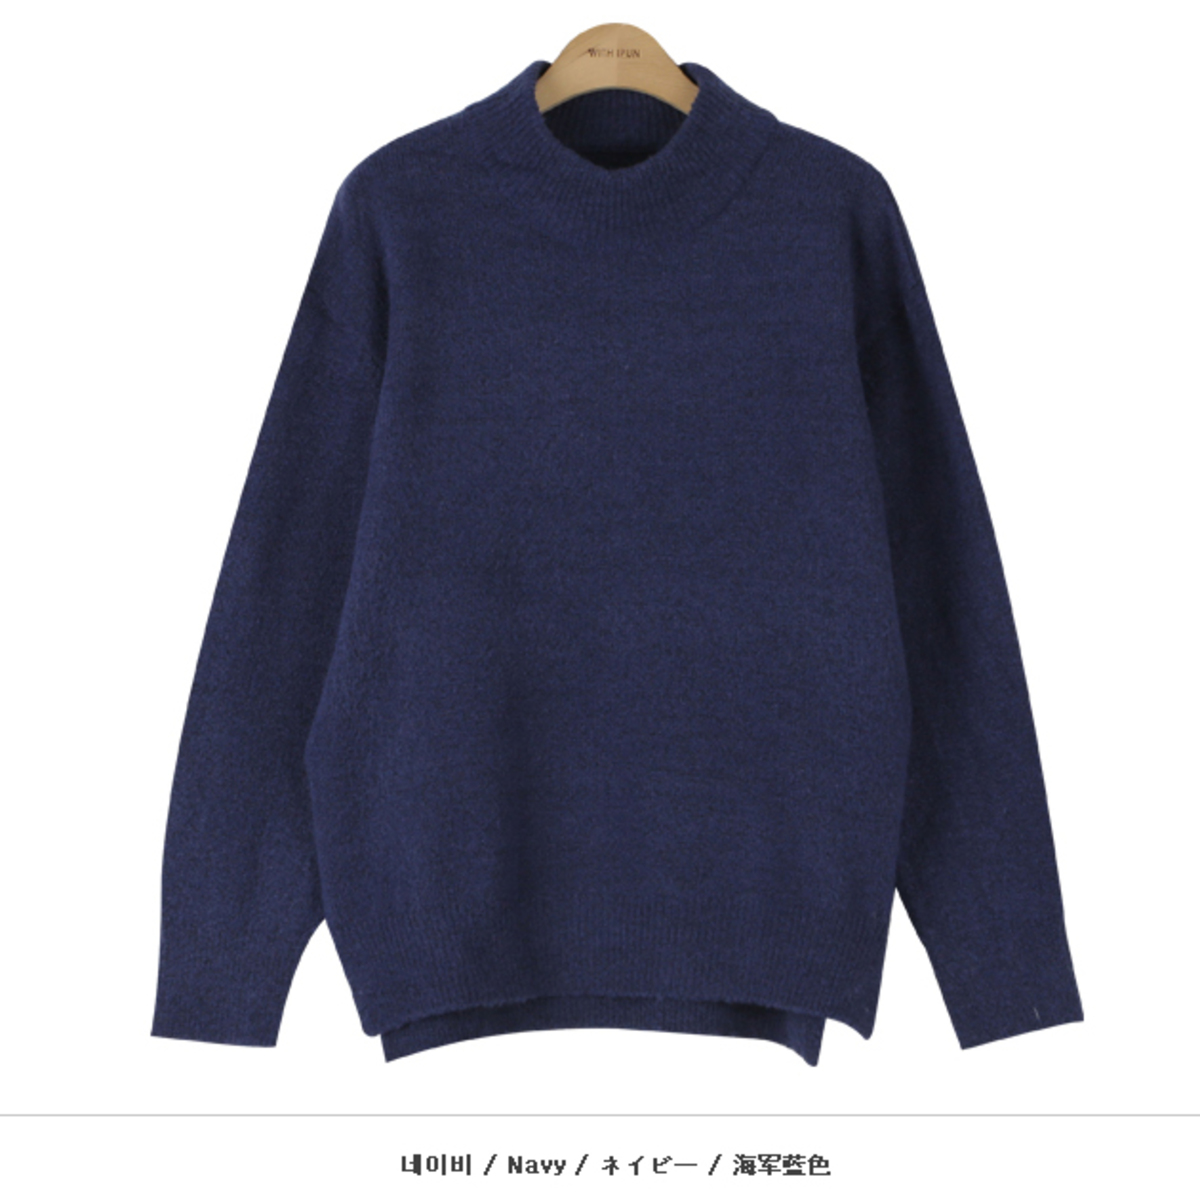 What Are You Half-High Neck Knit